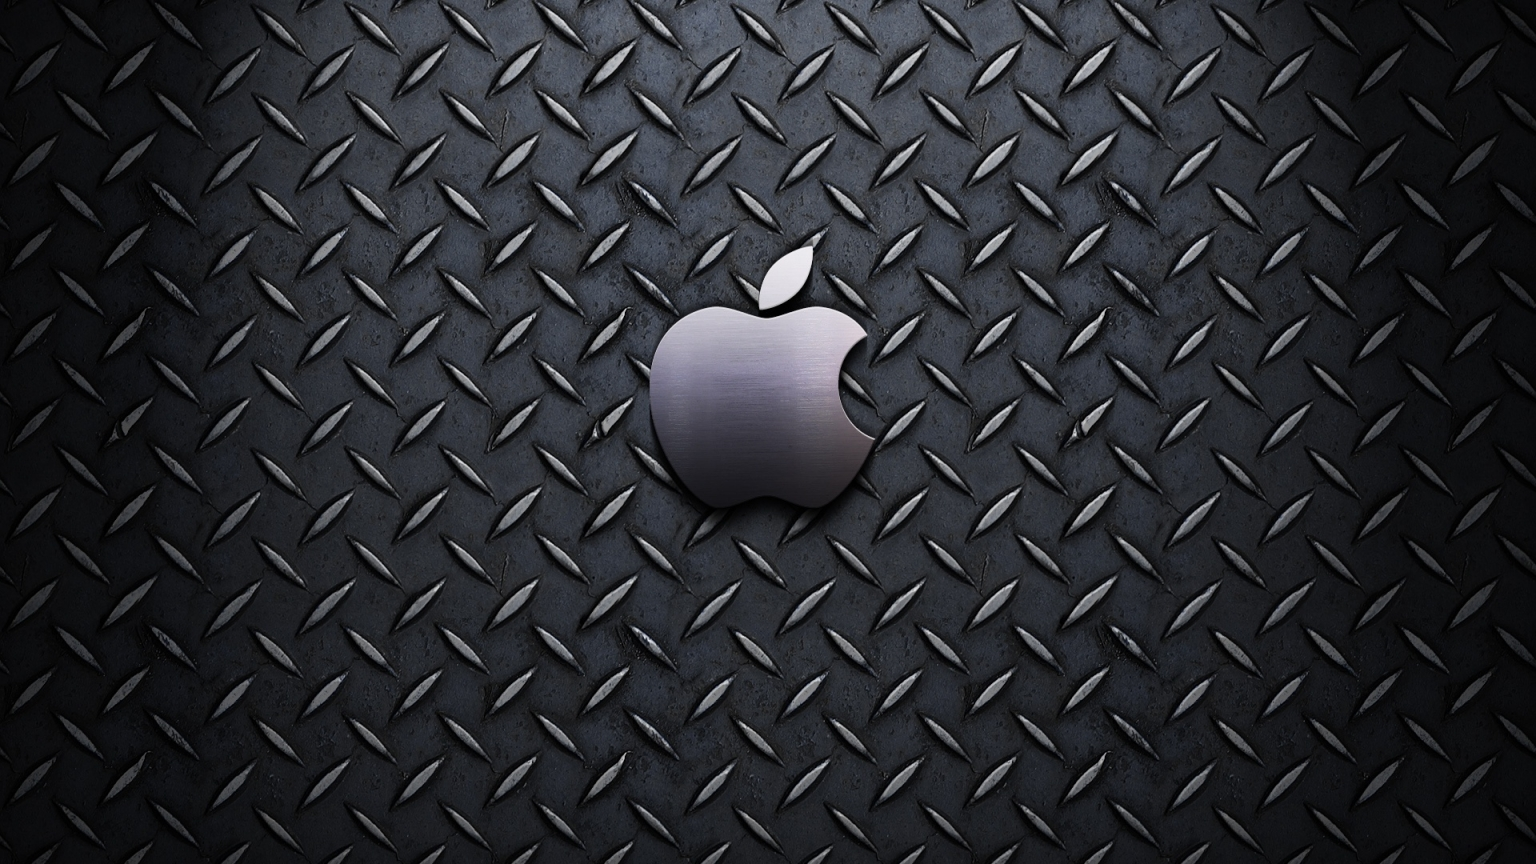 Industrial Apple for 1536 x 864 HDTV resolution